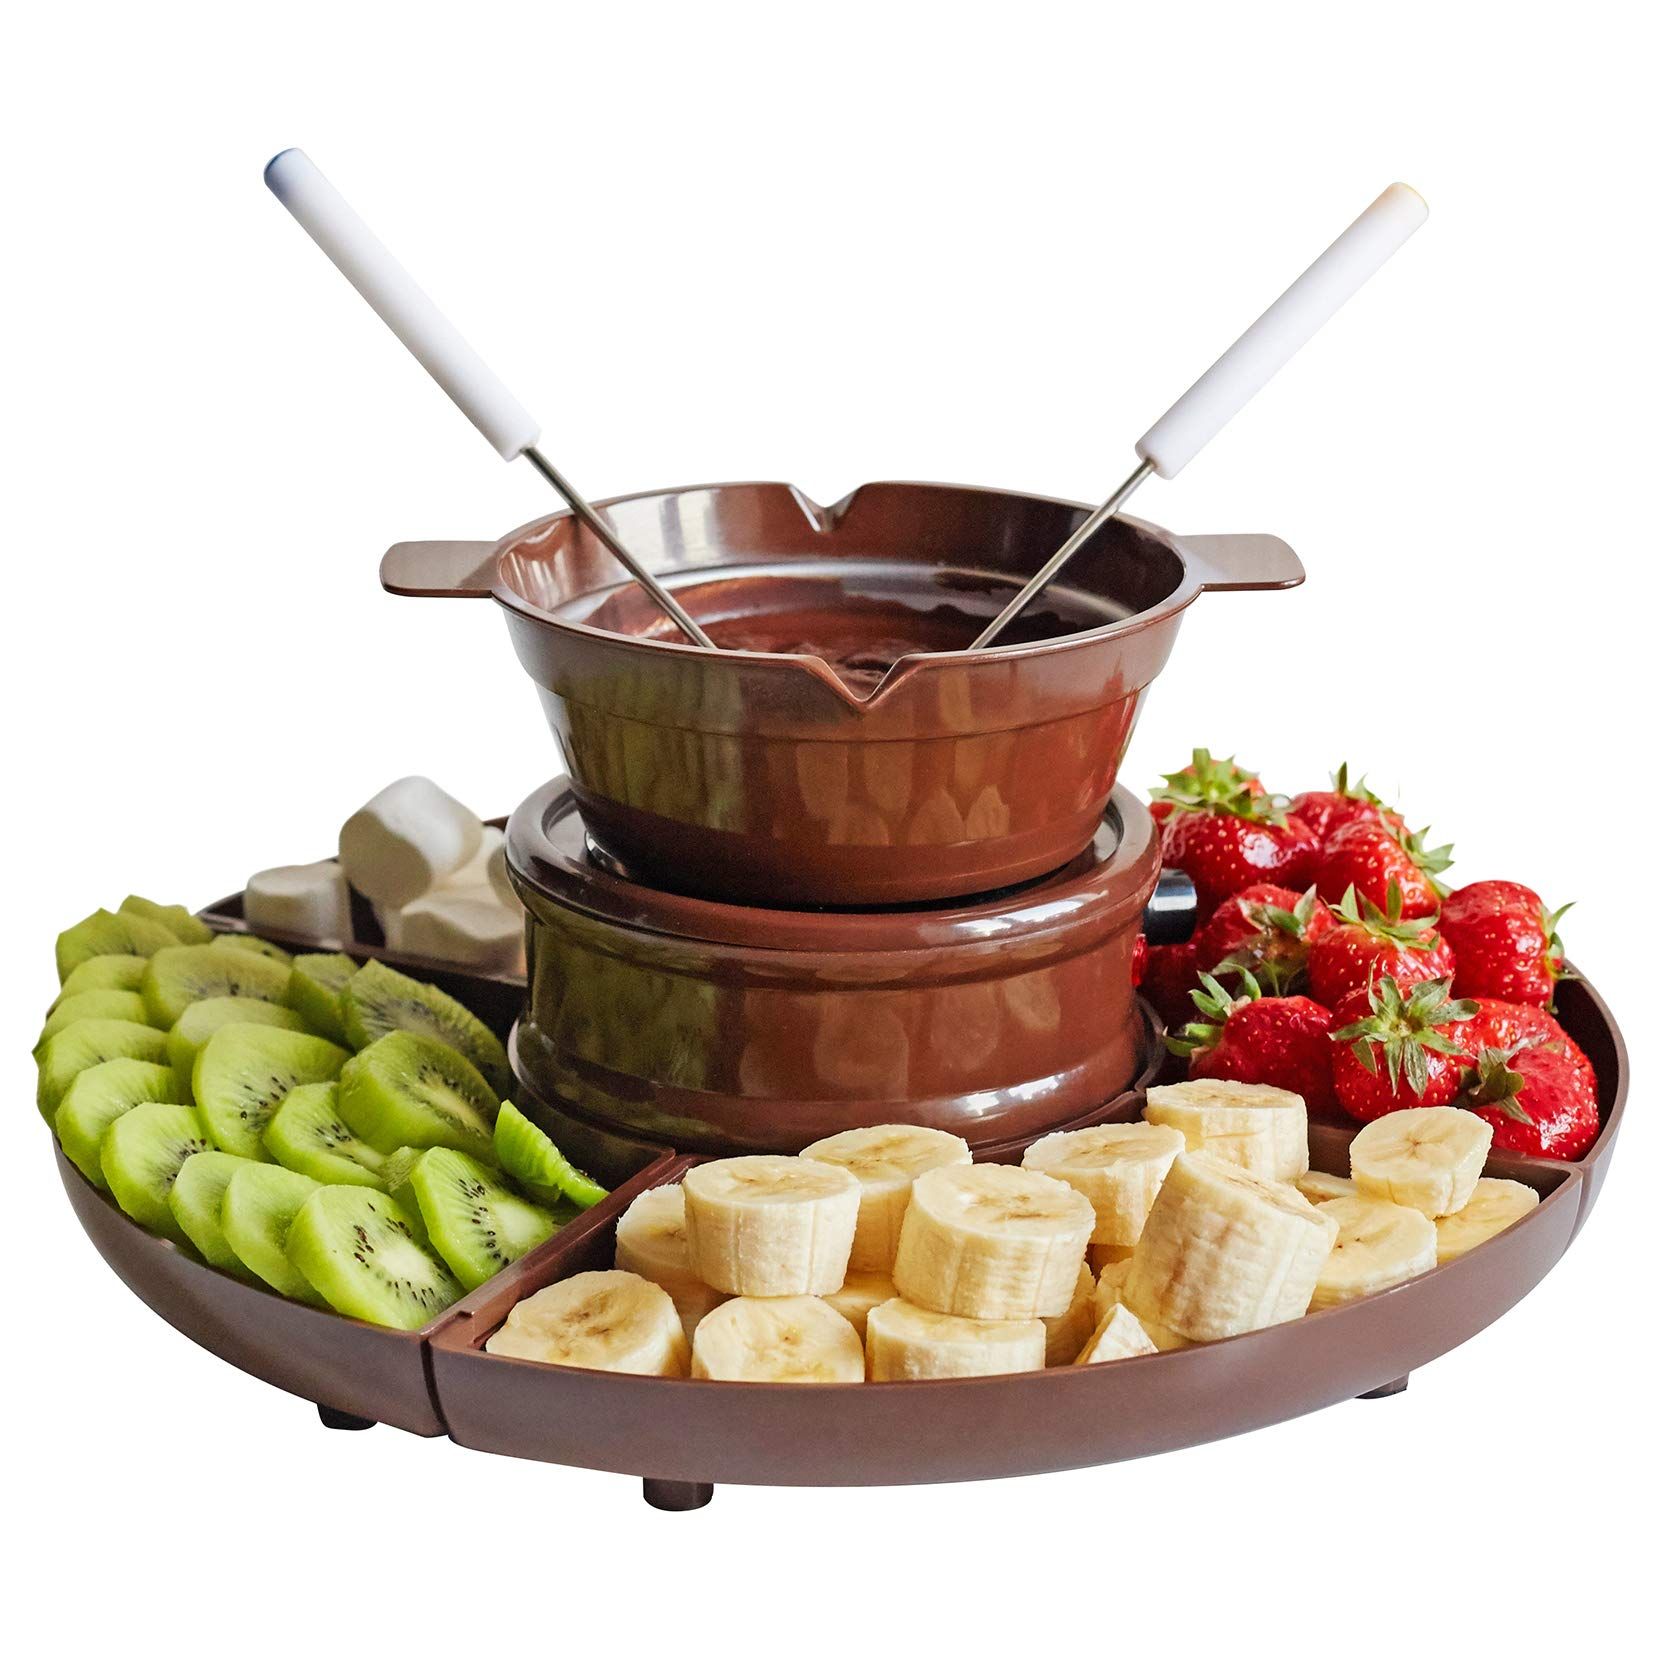 Chocolate Fondue Set - 3-in-1 Candy Maker - Chocolate Dipping Pot - Gummy Bear Maker - Chocolate Candy Making Kit - Electric Melting Pot and Silicone Candy Molds by Kenley